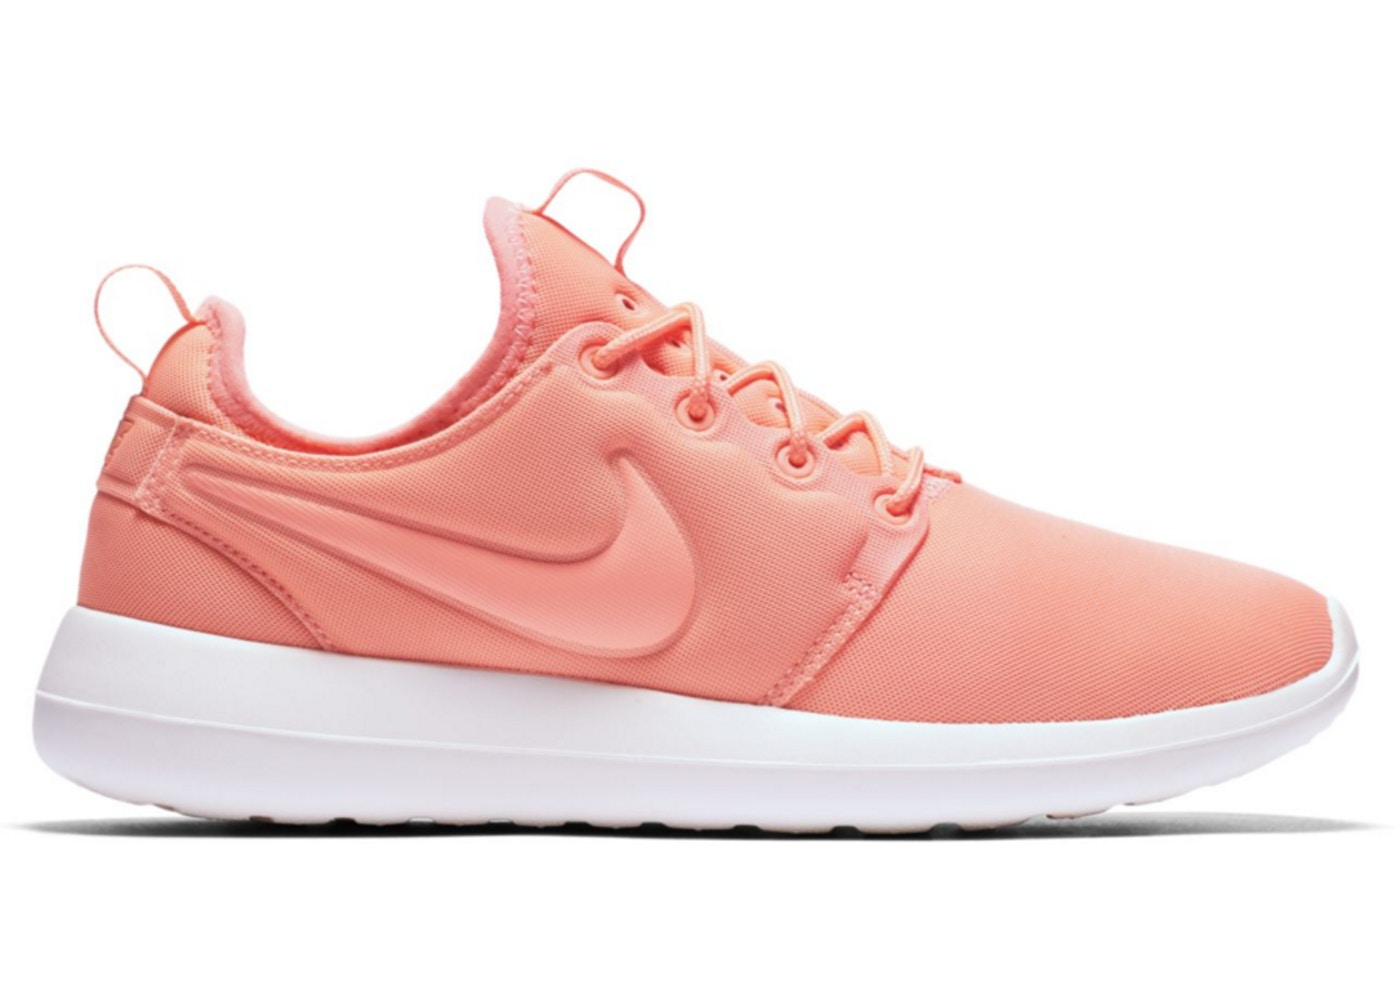 Nike Roshe Two Atomic Pink (W)